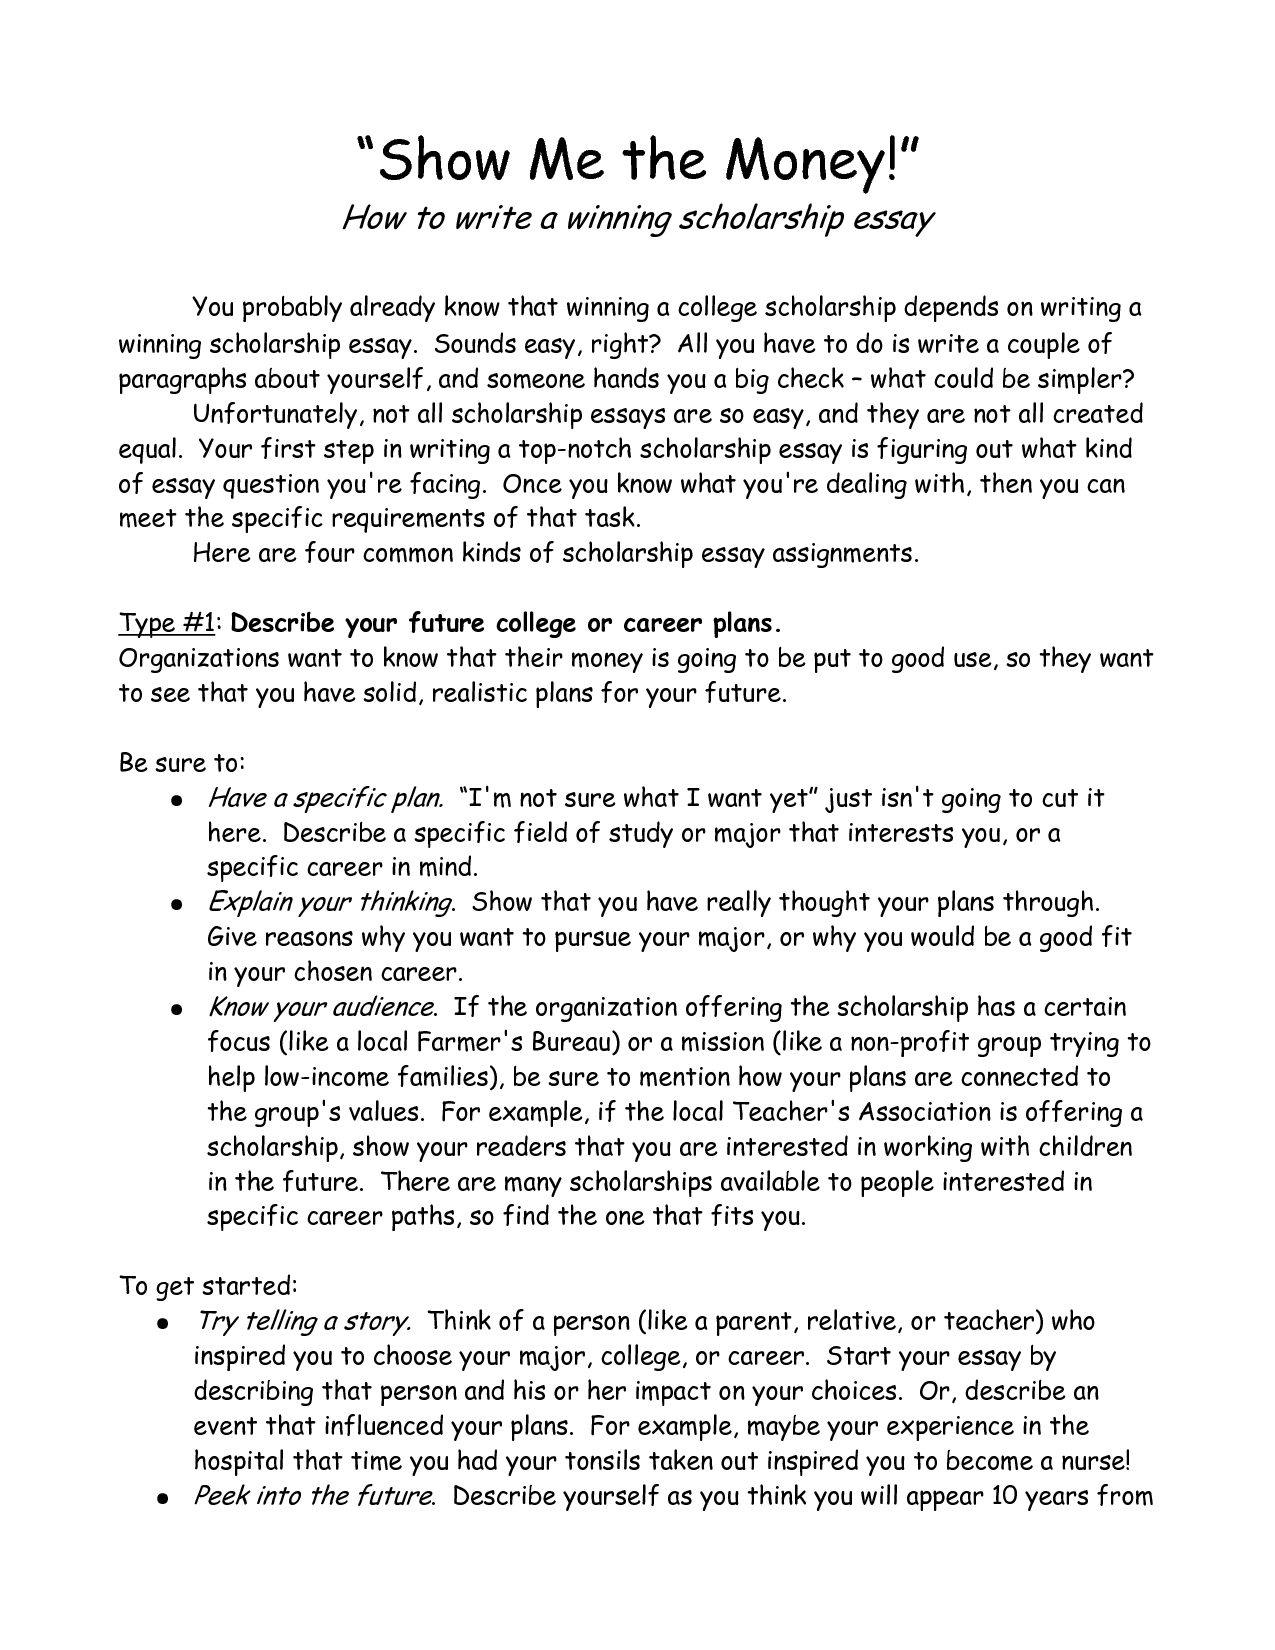 Example Essay About Myself For Scholarship